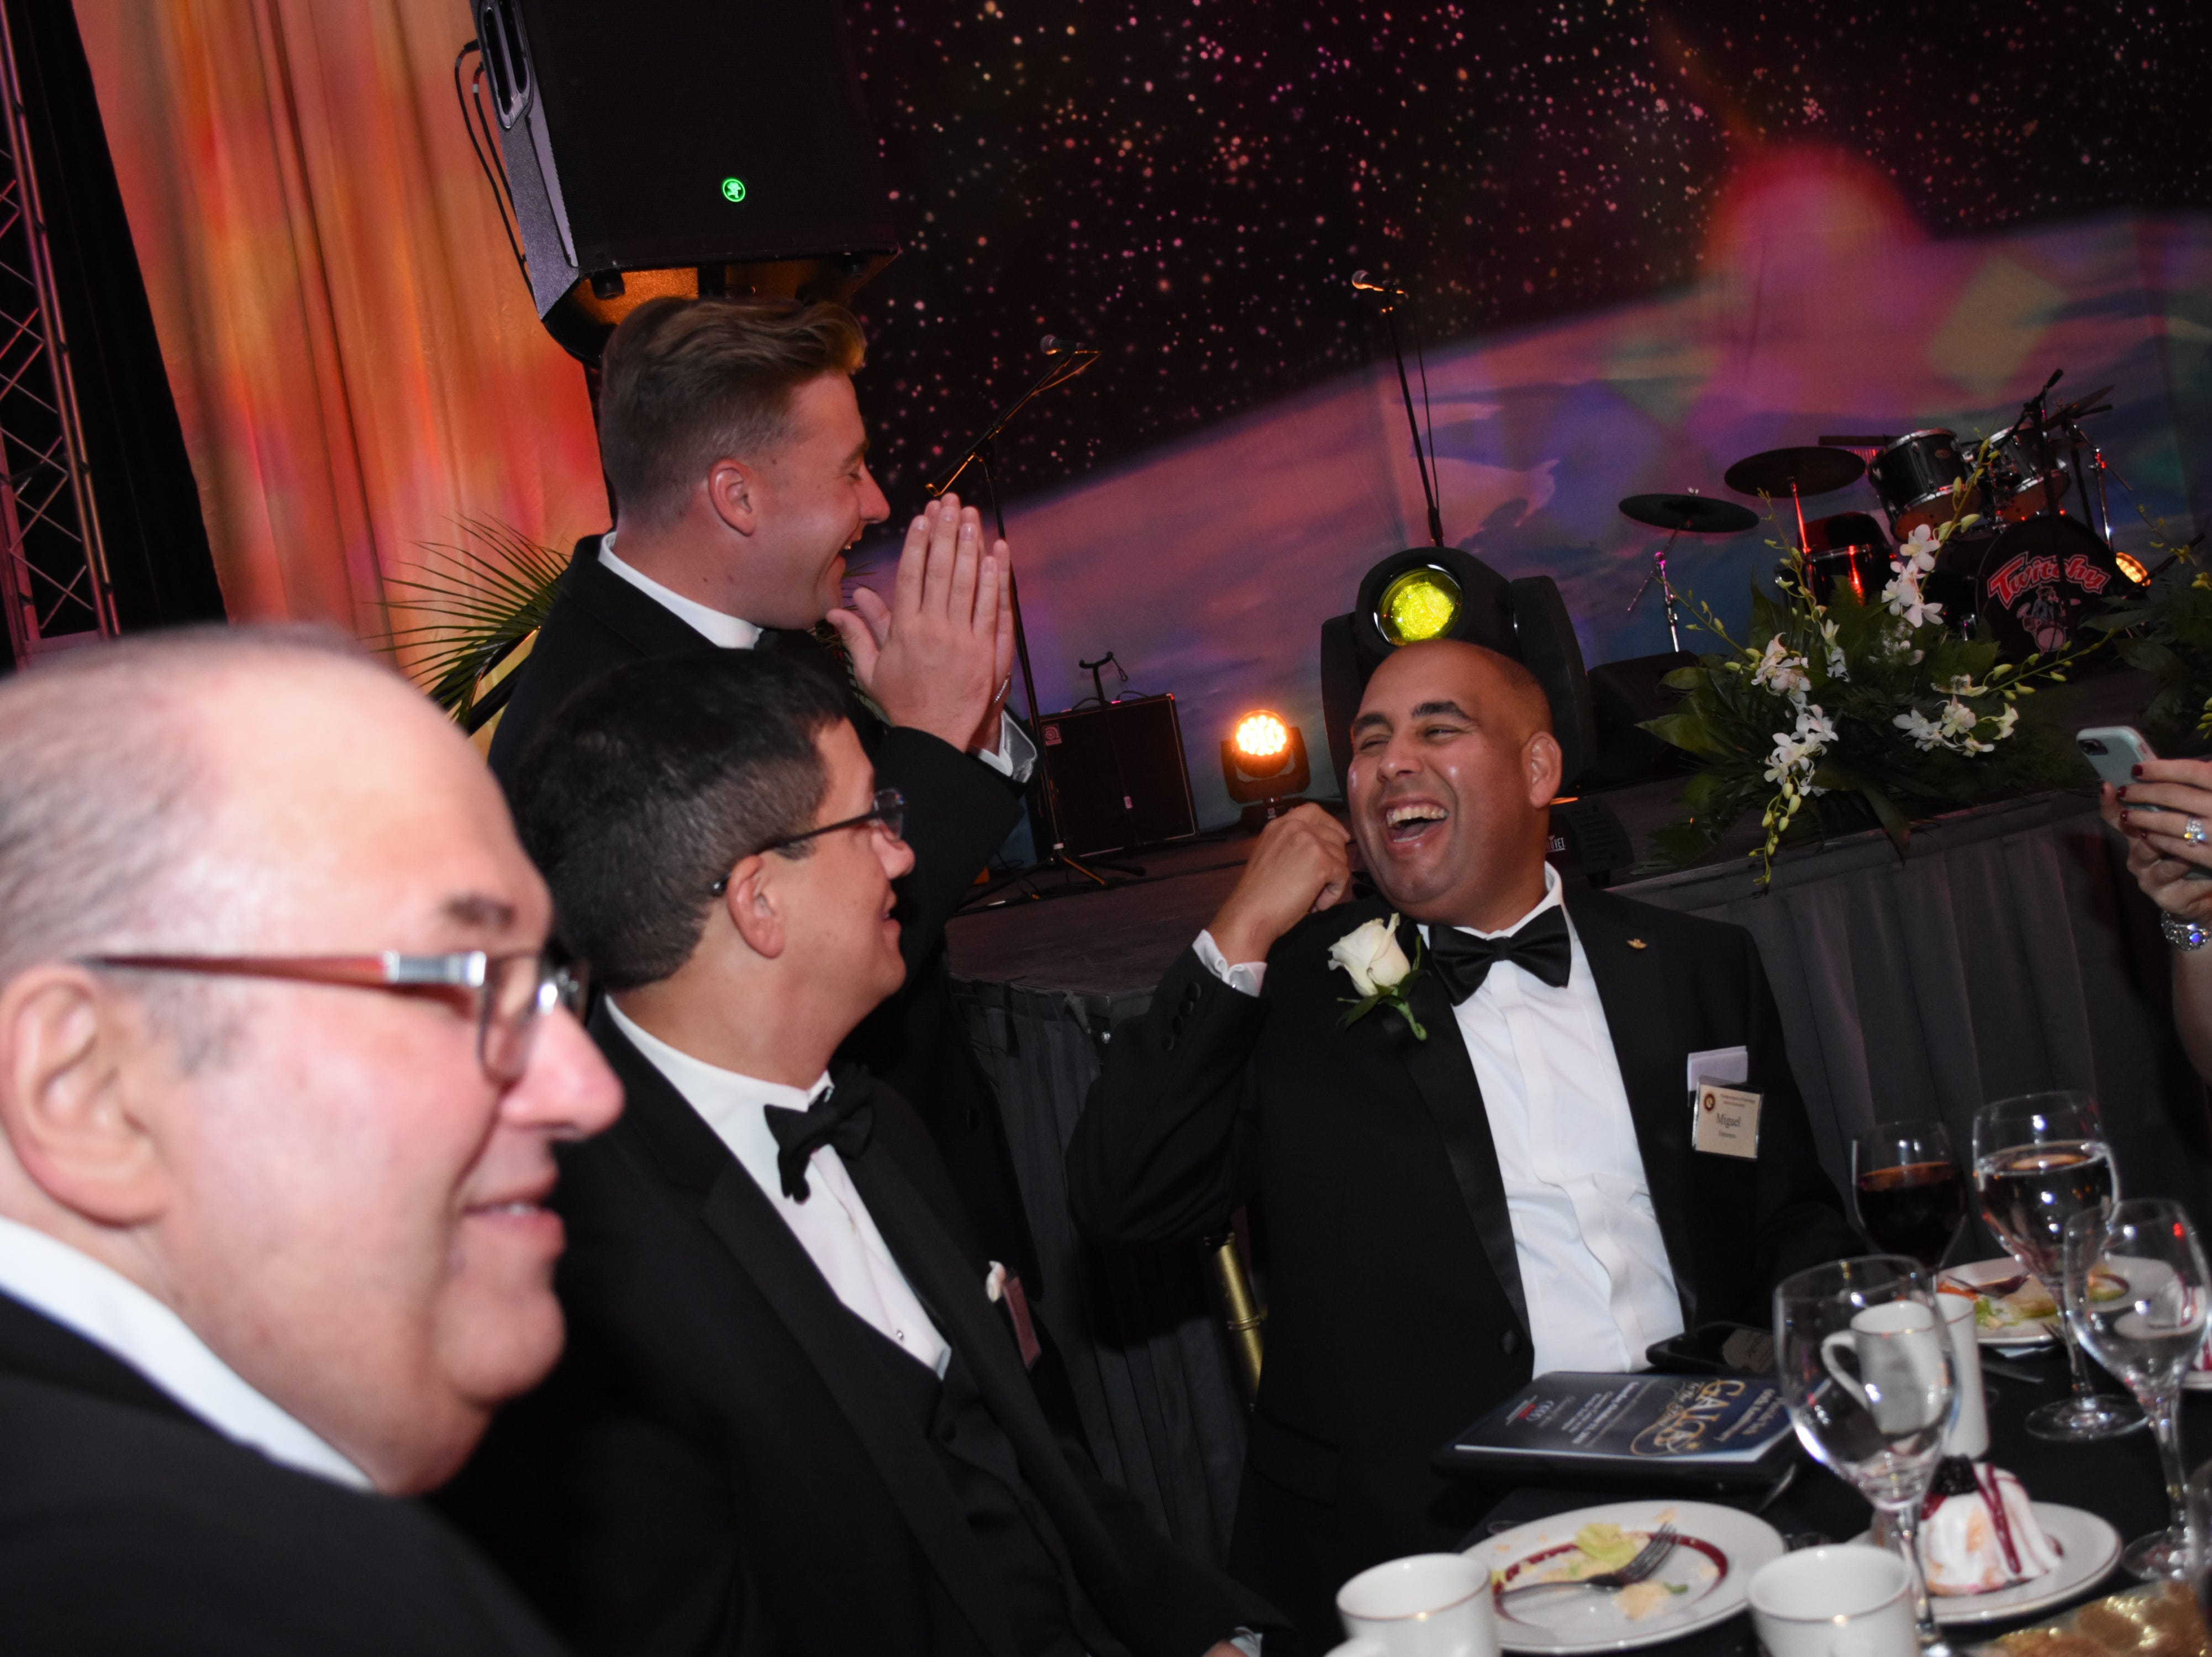 Jeff Ciarcia shares a laugh with Skurla Award recipient Miguel Estrenera at Florida Tech's 60th Anniversary Homecoming Gala Oct. 13, 2018, at the Clemente Center.